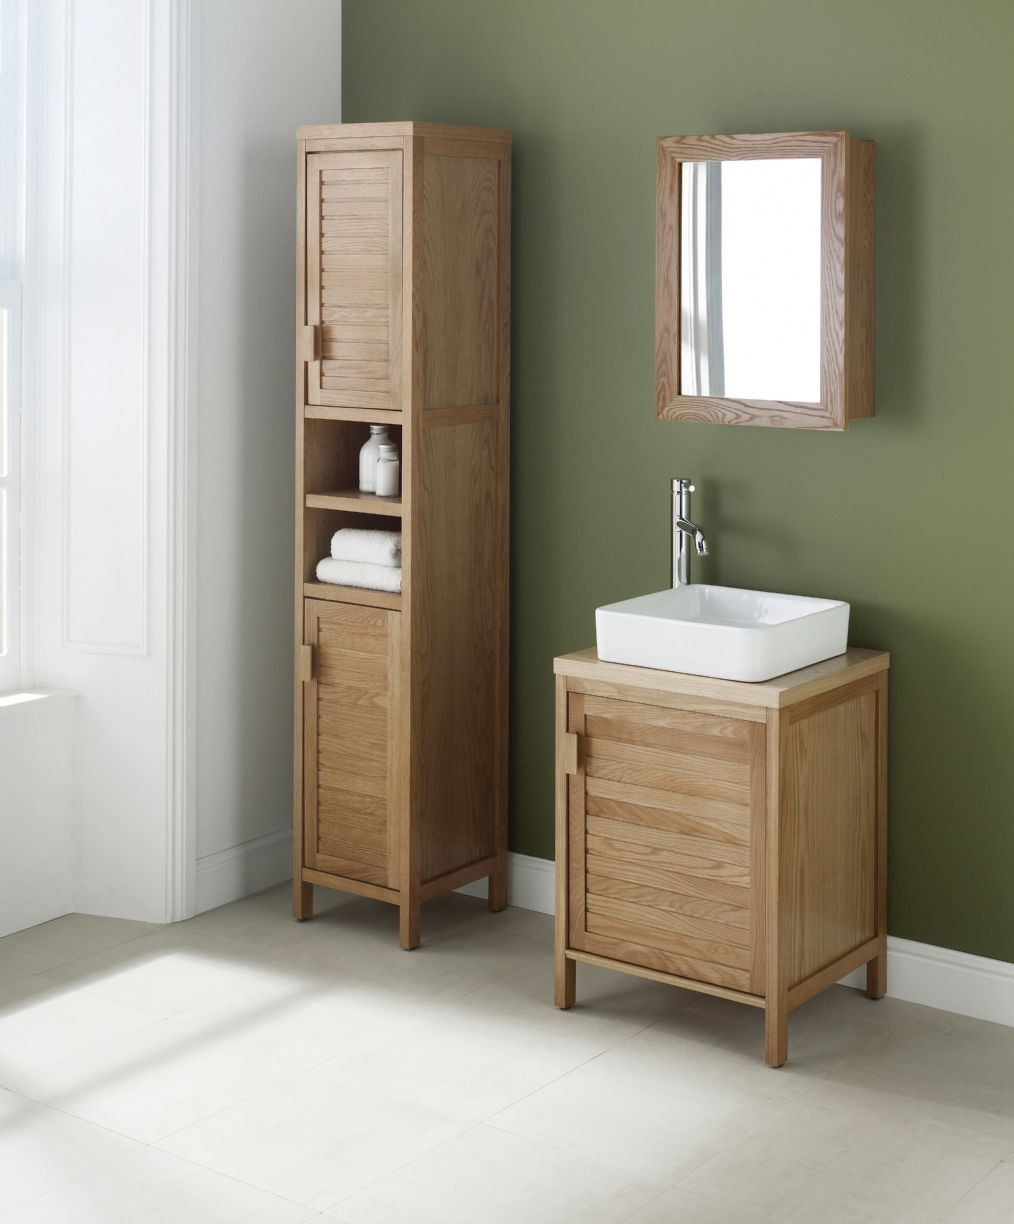 99 Free Standing Bathroom Cabinet Best Interior Paint Colors